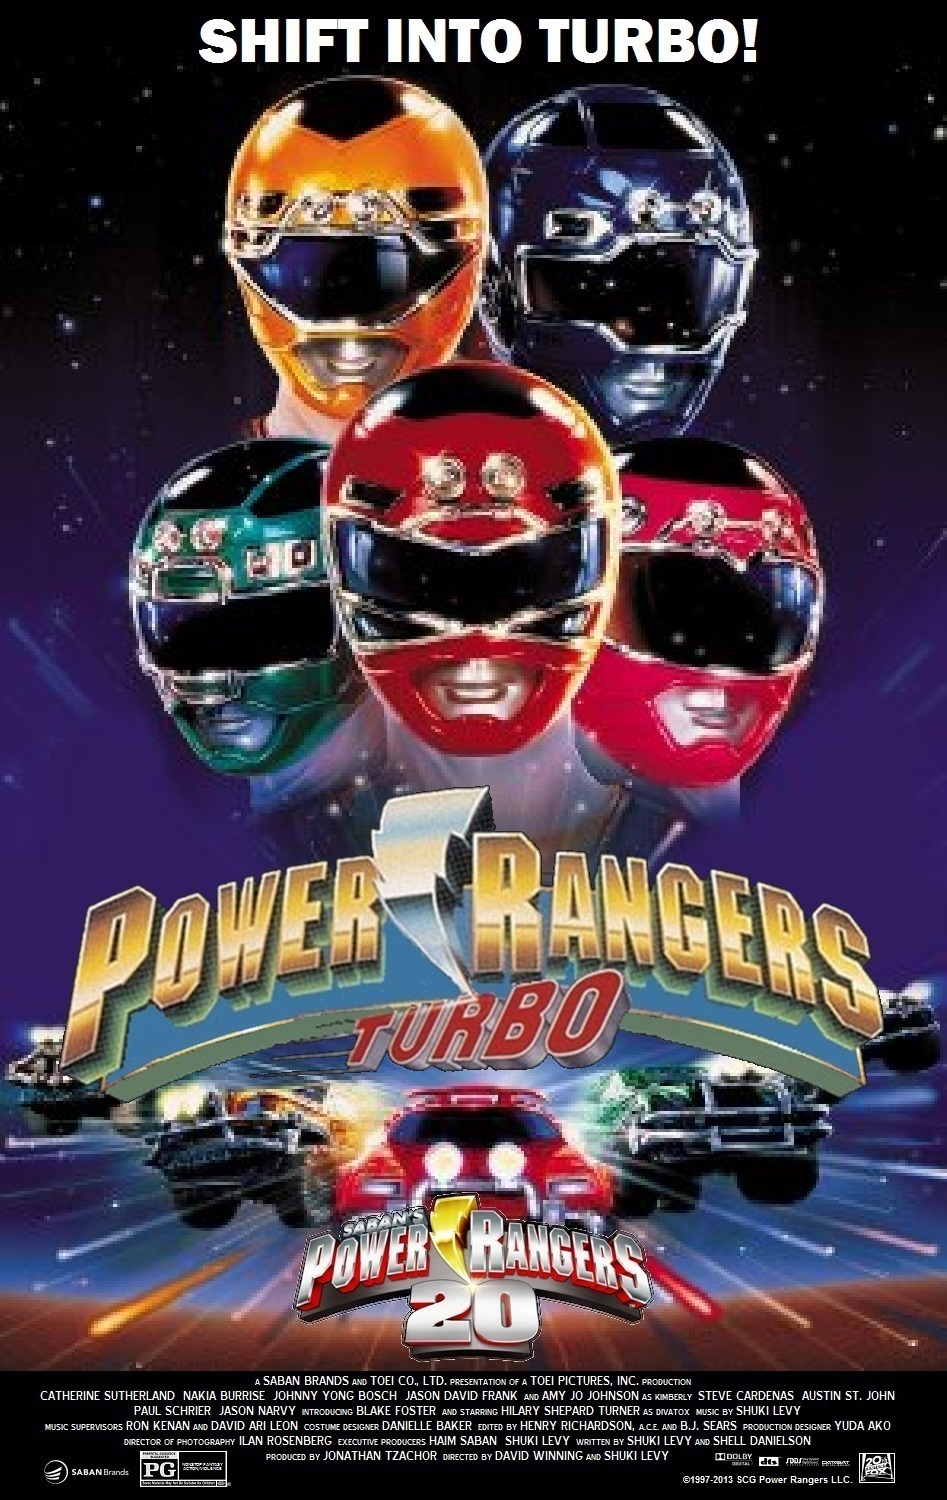 turbo_a_power_rangers_movie_poster_1997_01.jpg